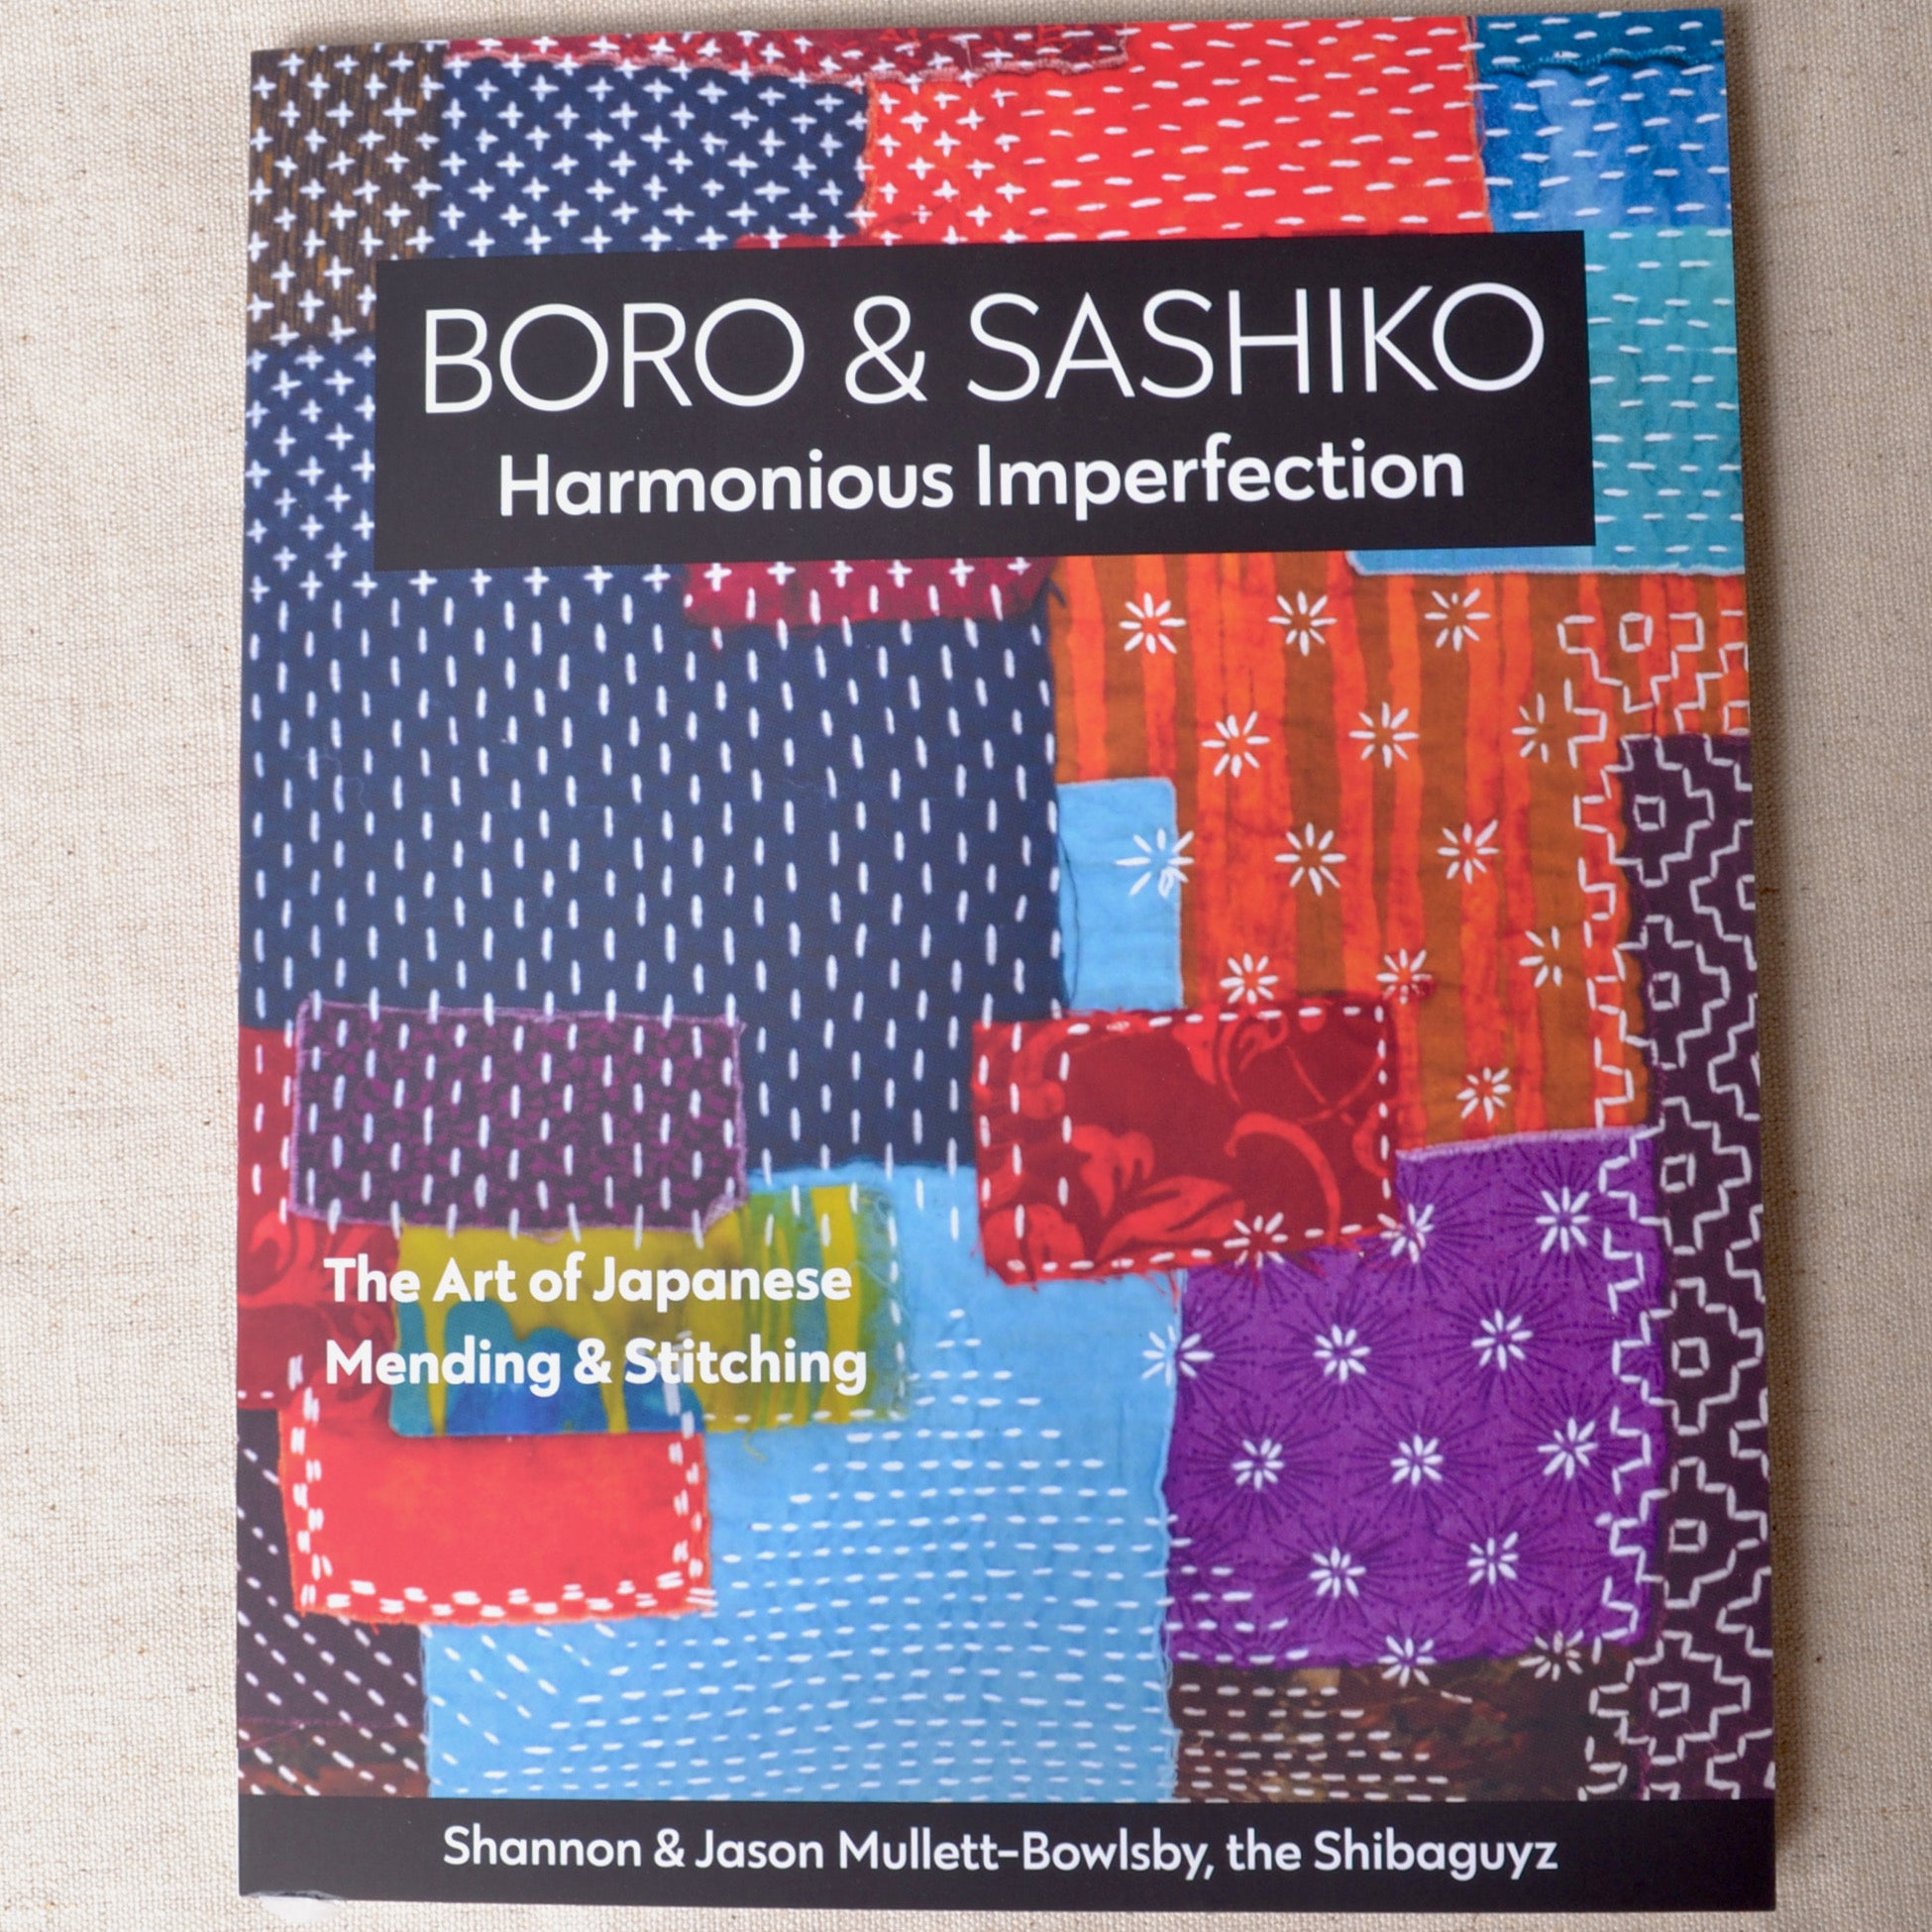 Boro & Sashiko, Harmonious Imperfection Book